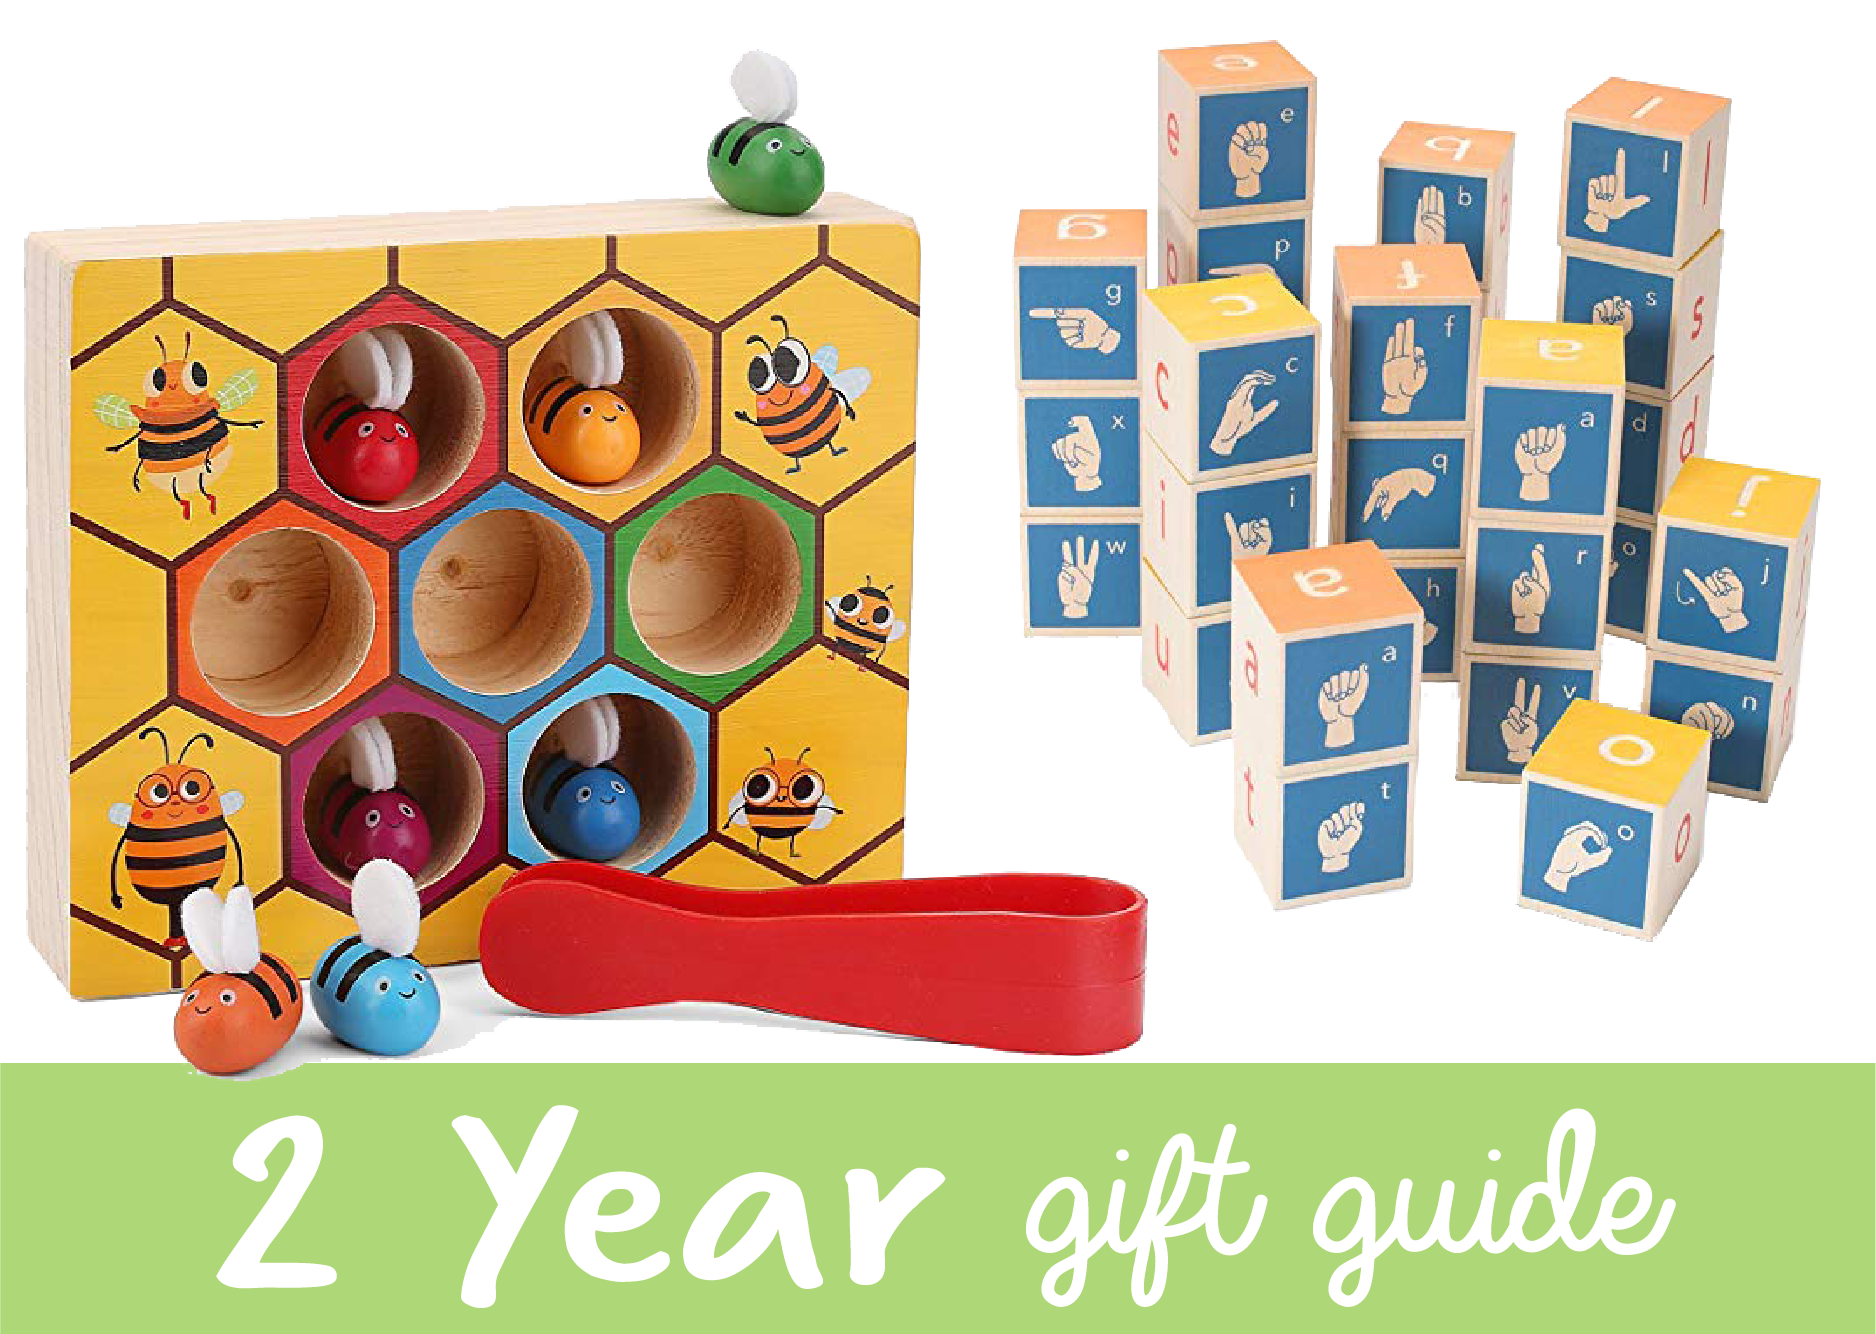 Toddler Development & Gift Guide for 2 Year Olds